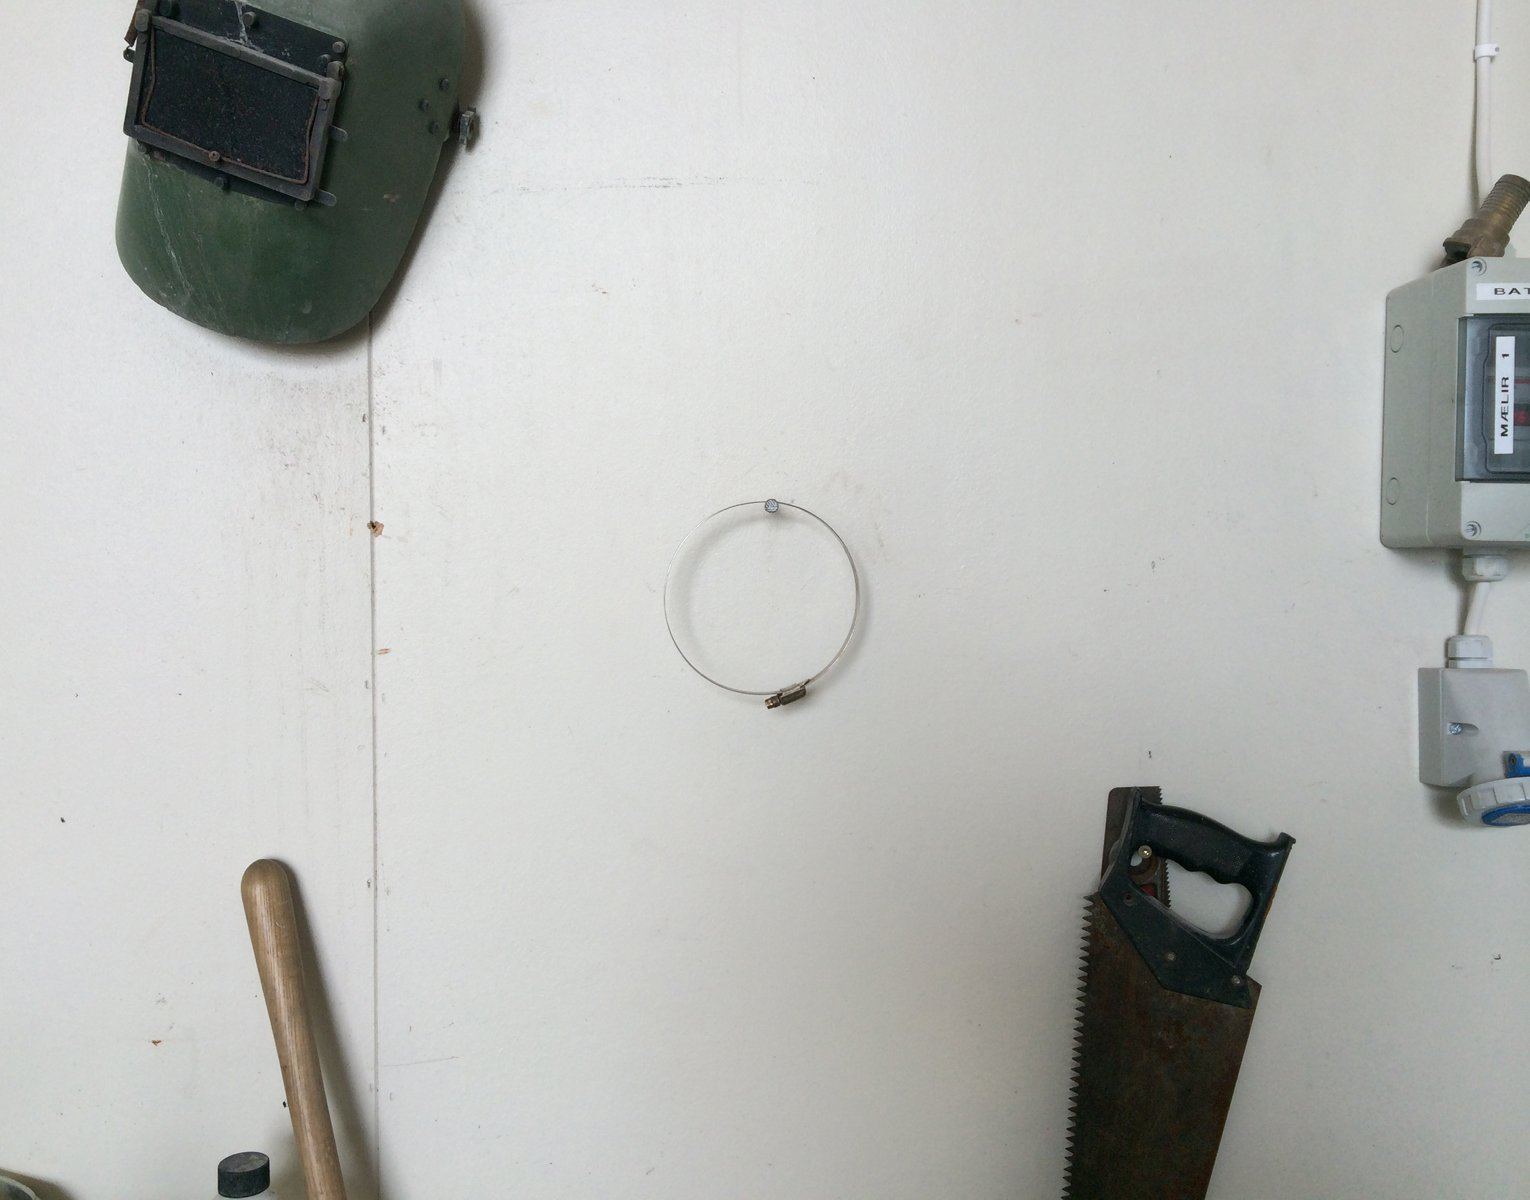 A welders mask, saw and centered circular pipe clamp hang on a white wall.